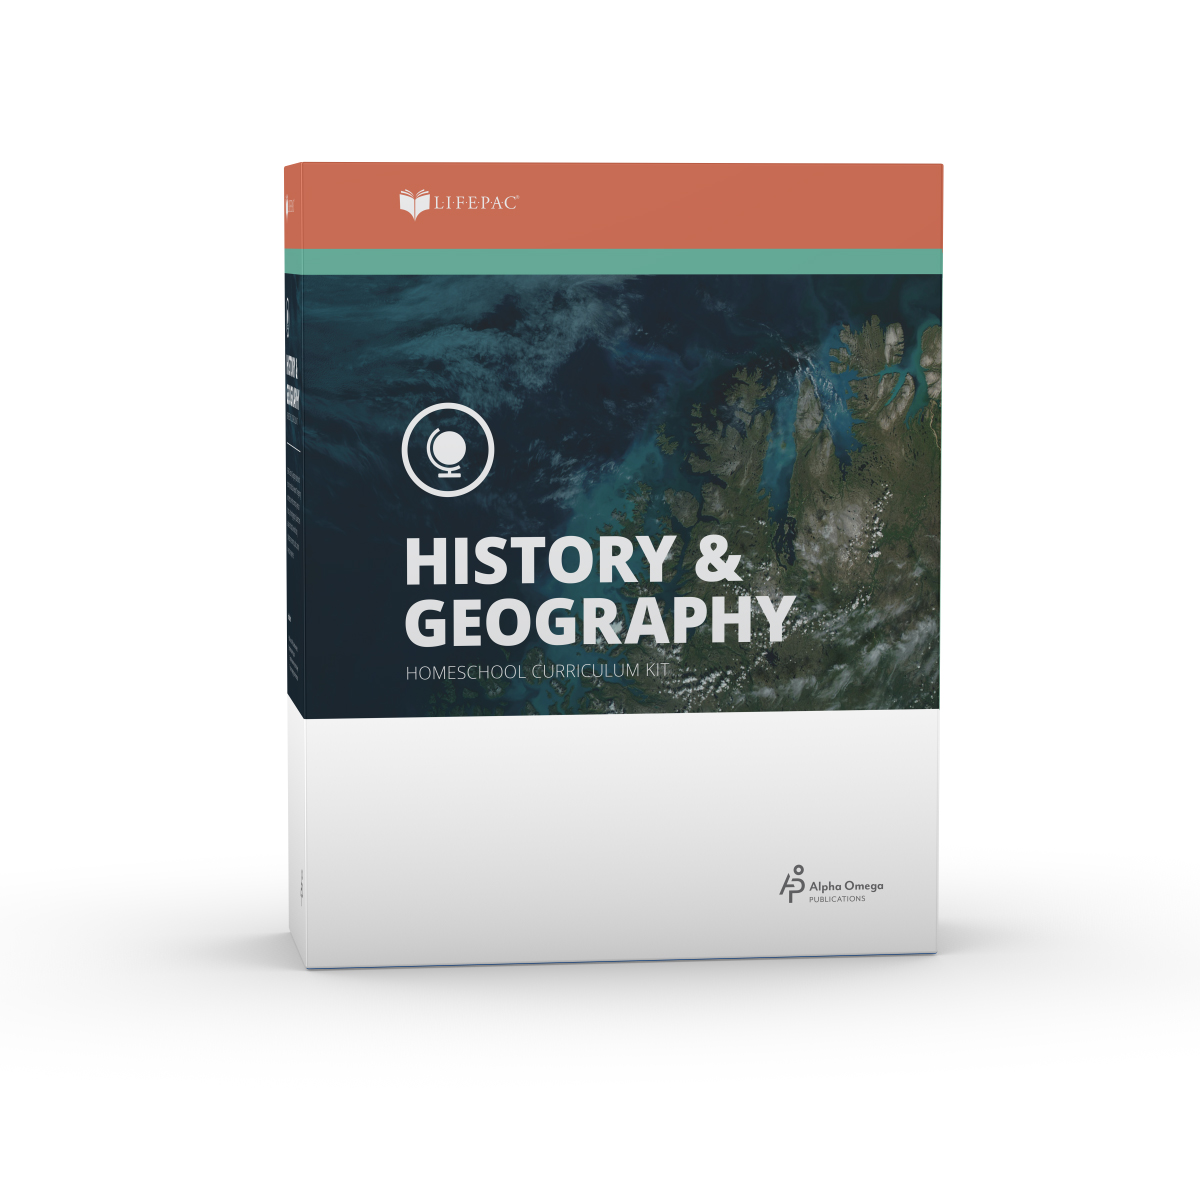 LIFEPAC 7th Grade History & Geography Set